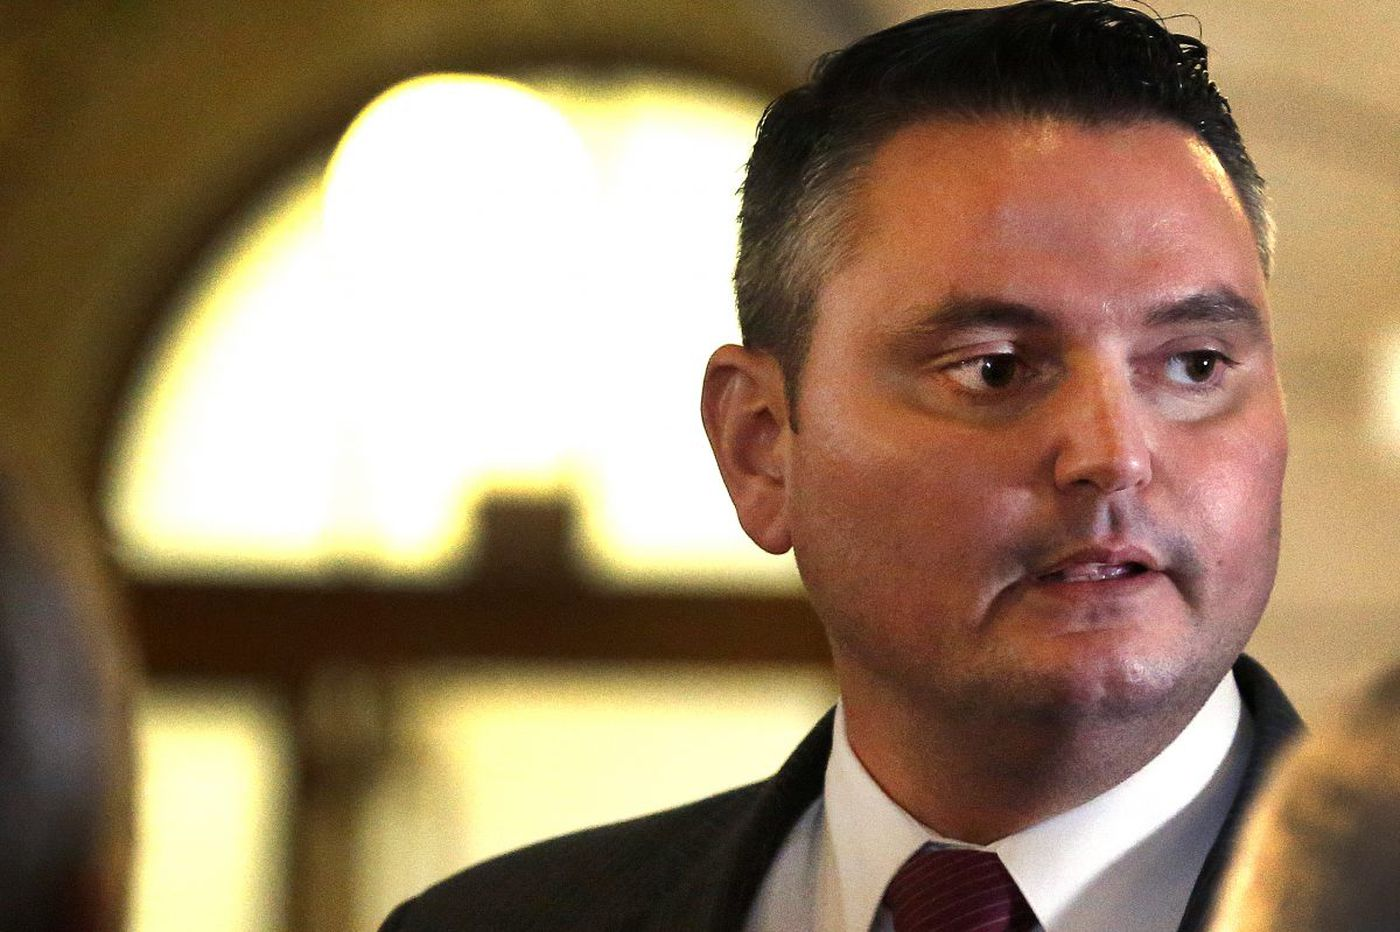 Prosecutors: No charges against ex-lawmaker from Delco accused of sexual assault